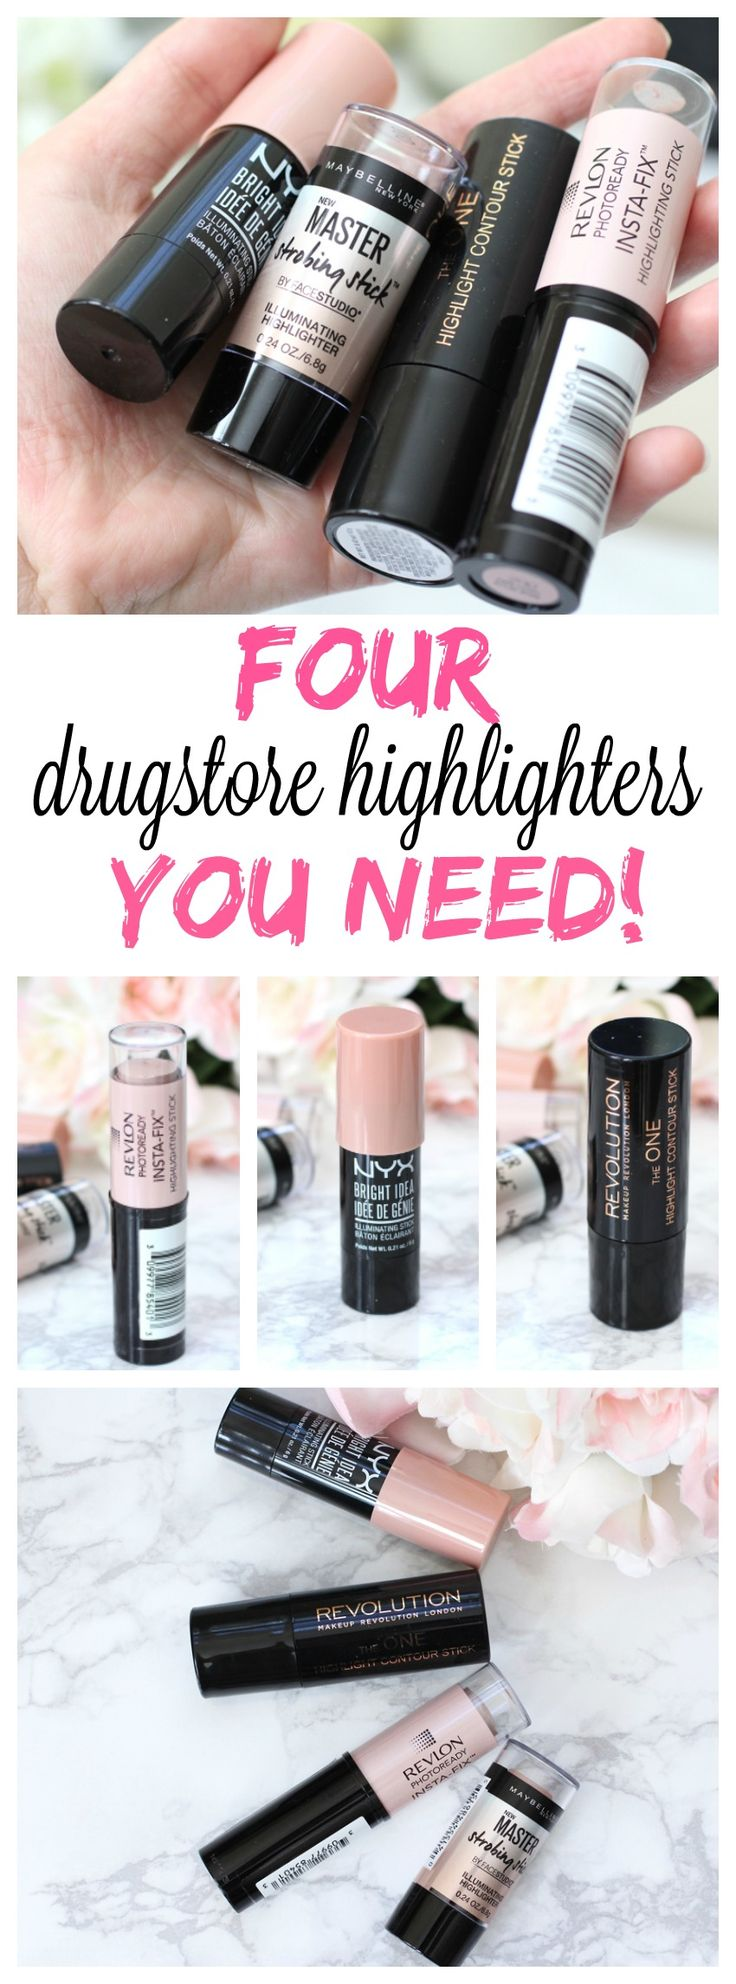 Four drugstore highlighters you NEED in your life!